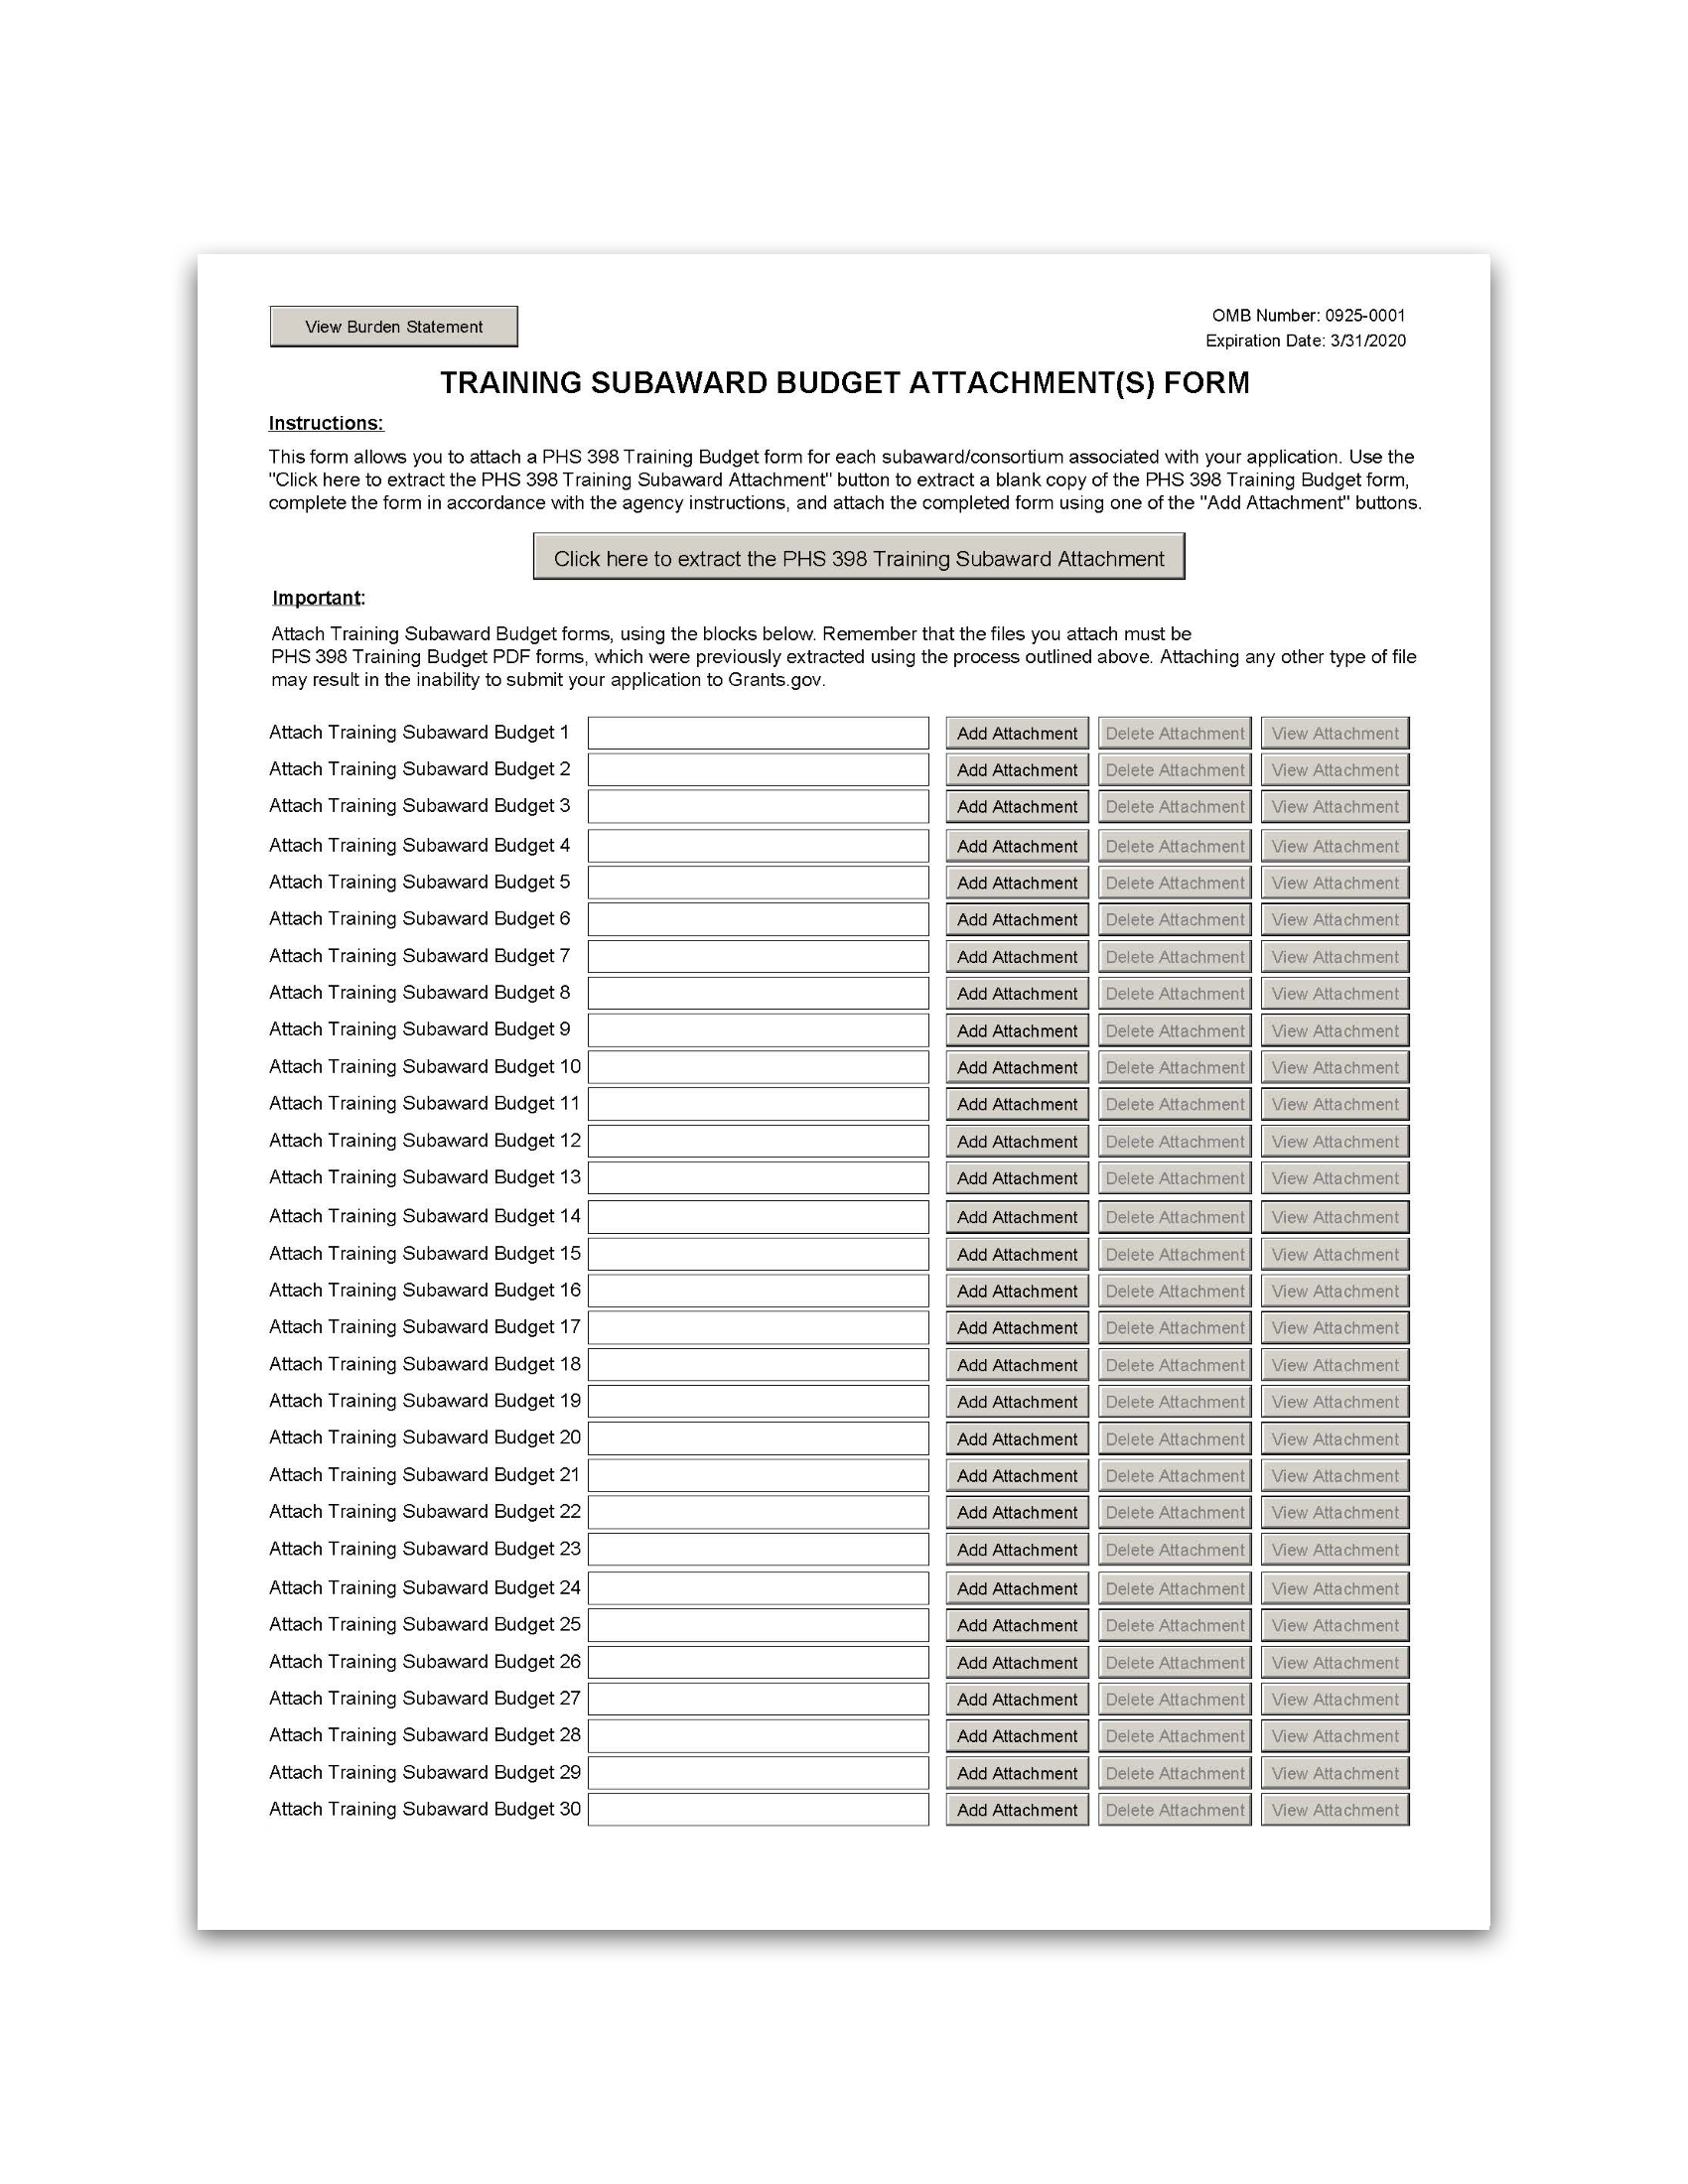 G 340 Phs 398 Training Subaward Budget Attachment S Form